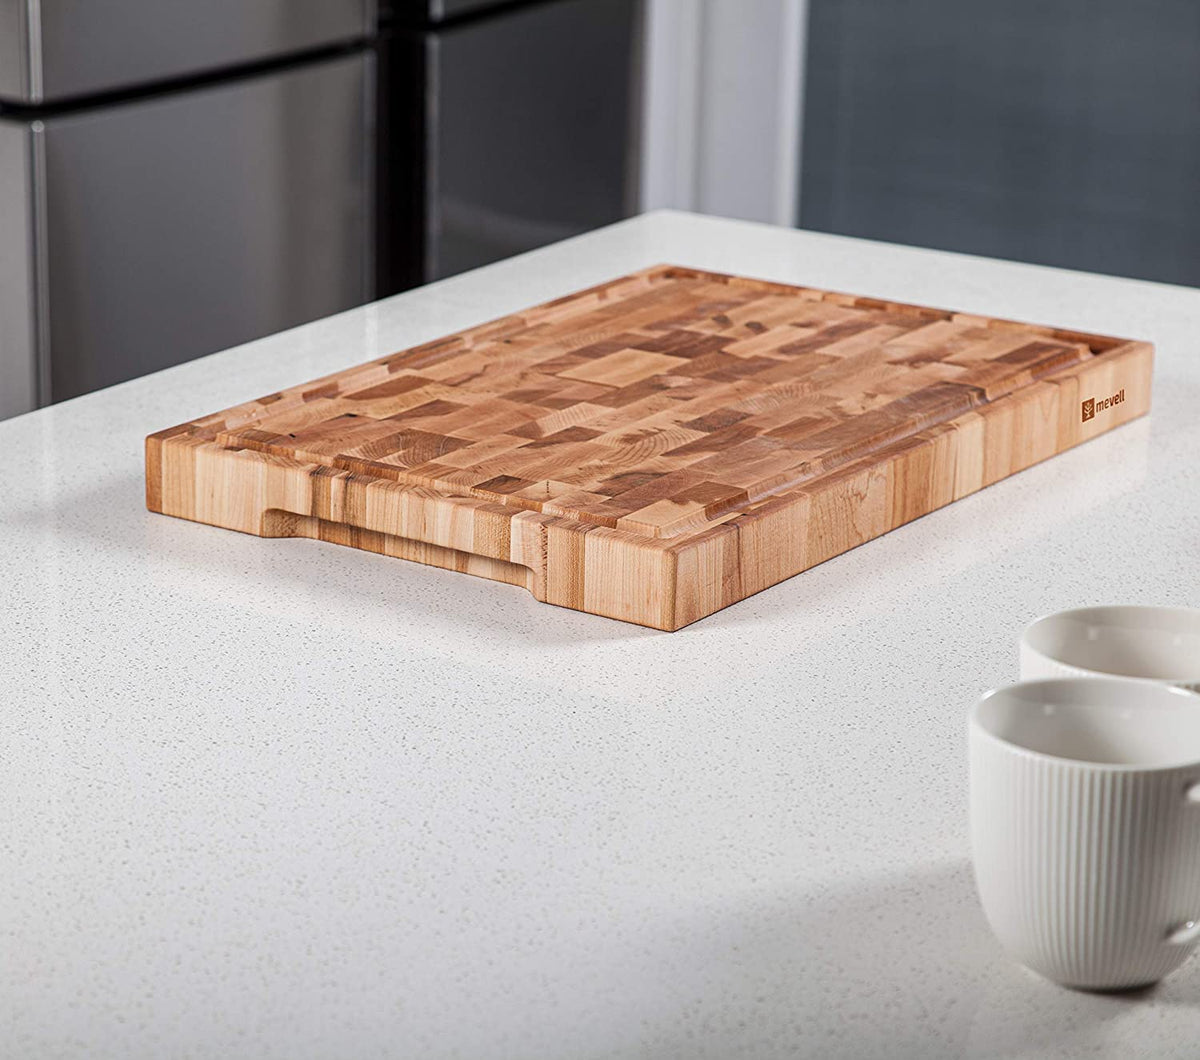 18x12x1.5'' End Grain Maple Cutting Board with Juice Grooves and Handles